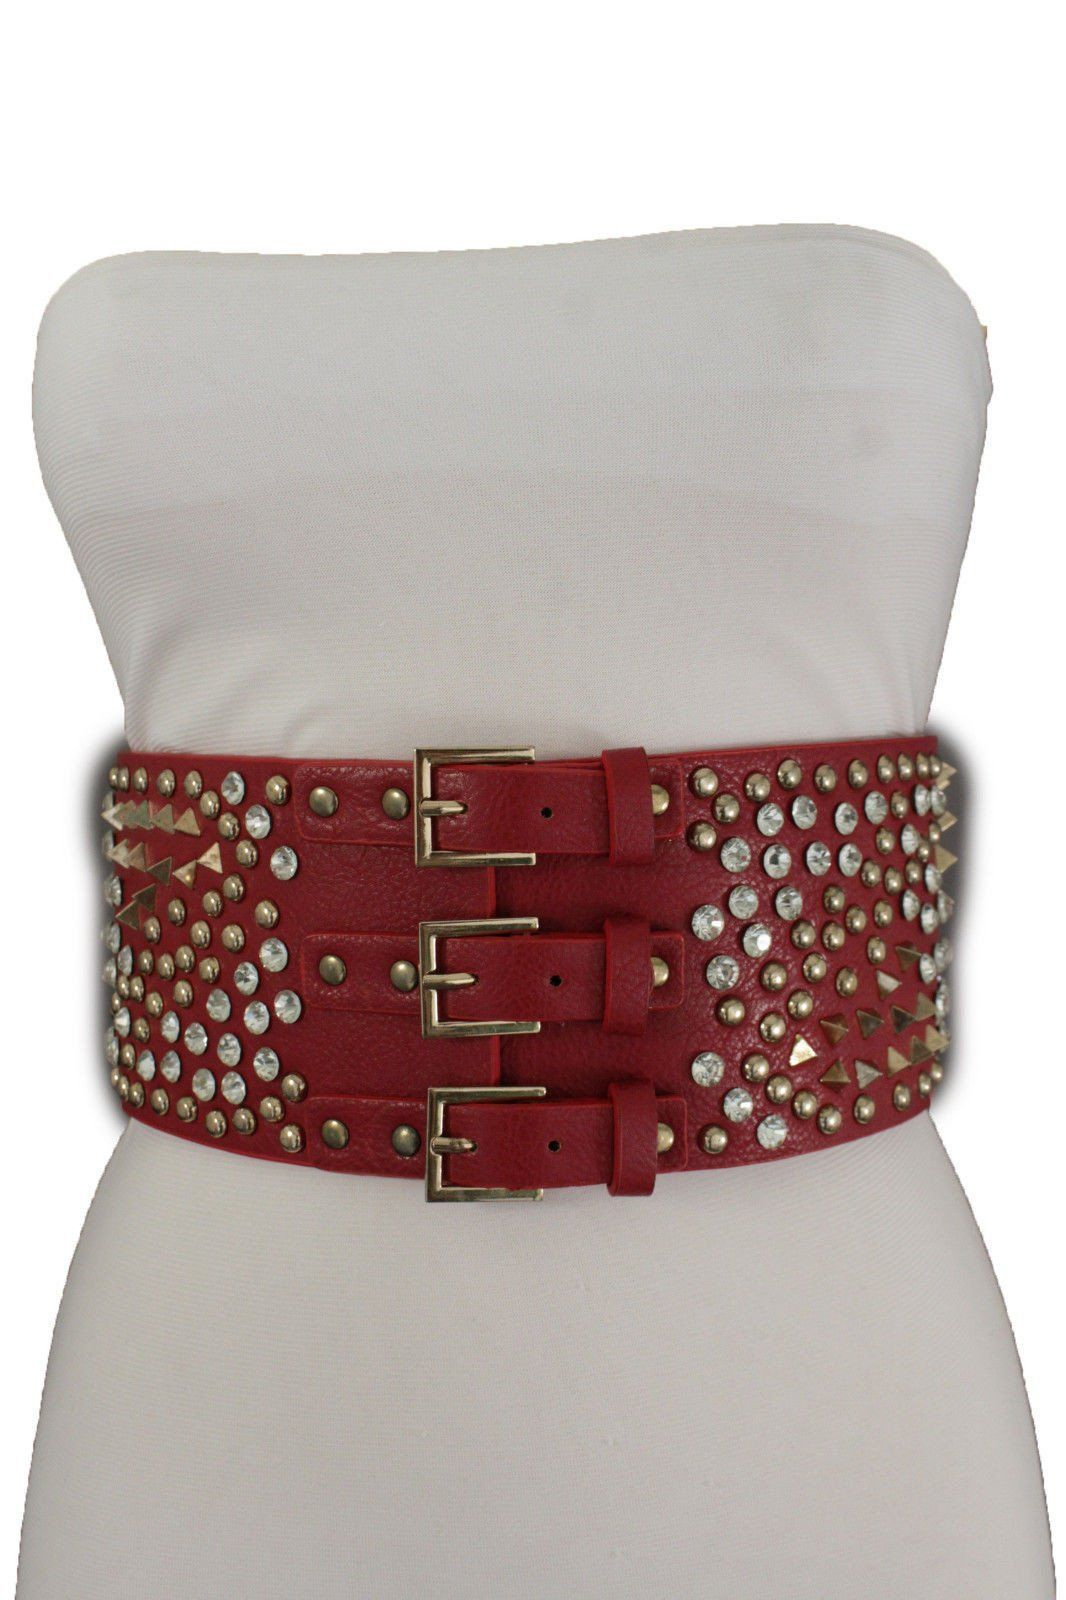 286bf5650 Trendy Fashion Unique, Chic Jewelry Accessory High Waist Belt - Spike Stud  Bead 3 Buckles Corset There Are 3 Colors To Choose From You Are Buying One  Belt: ...